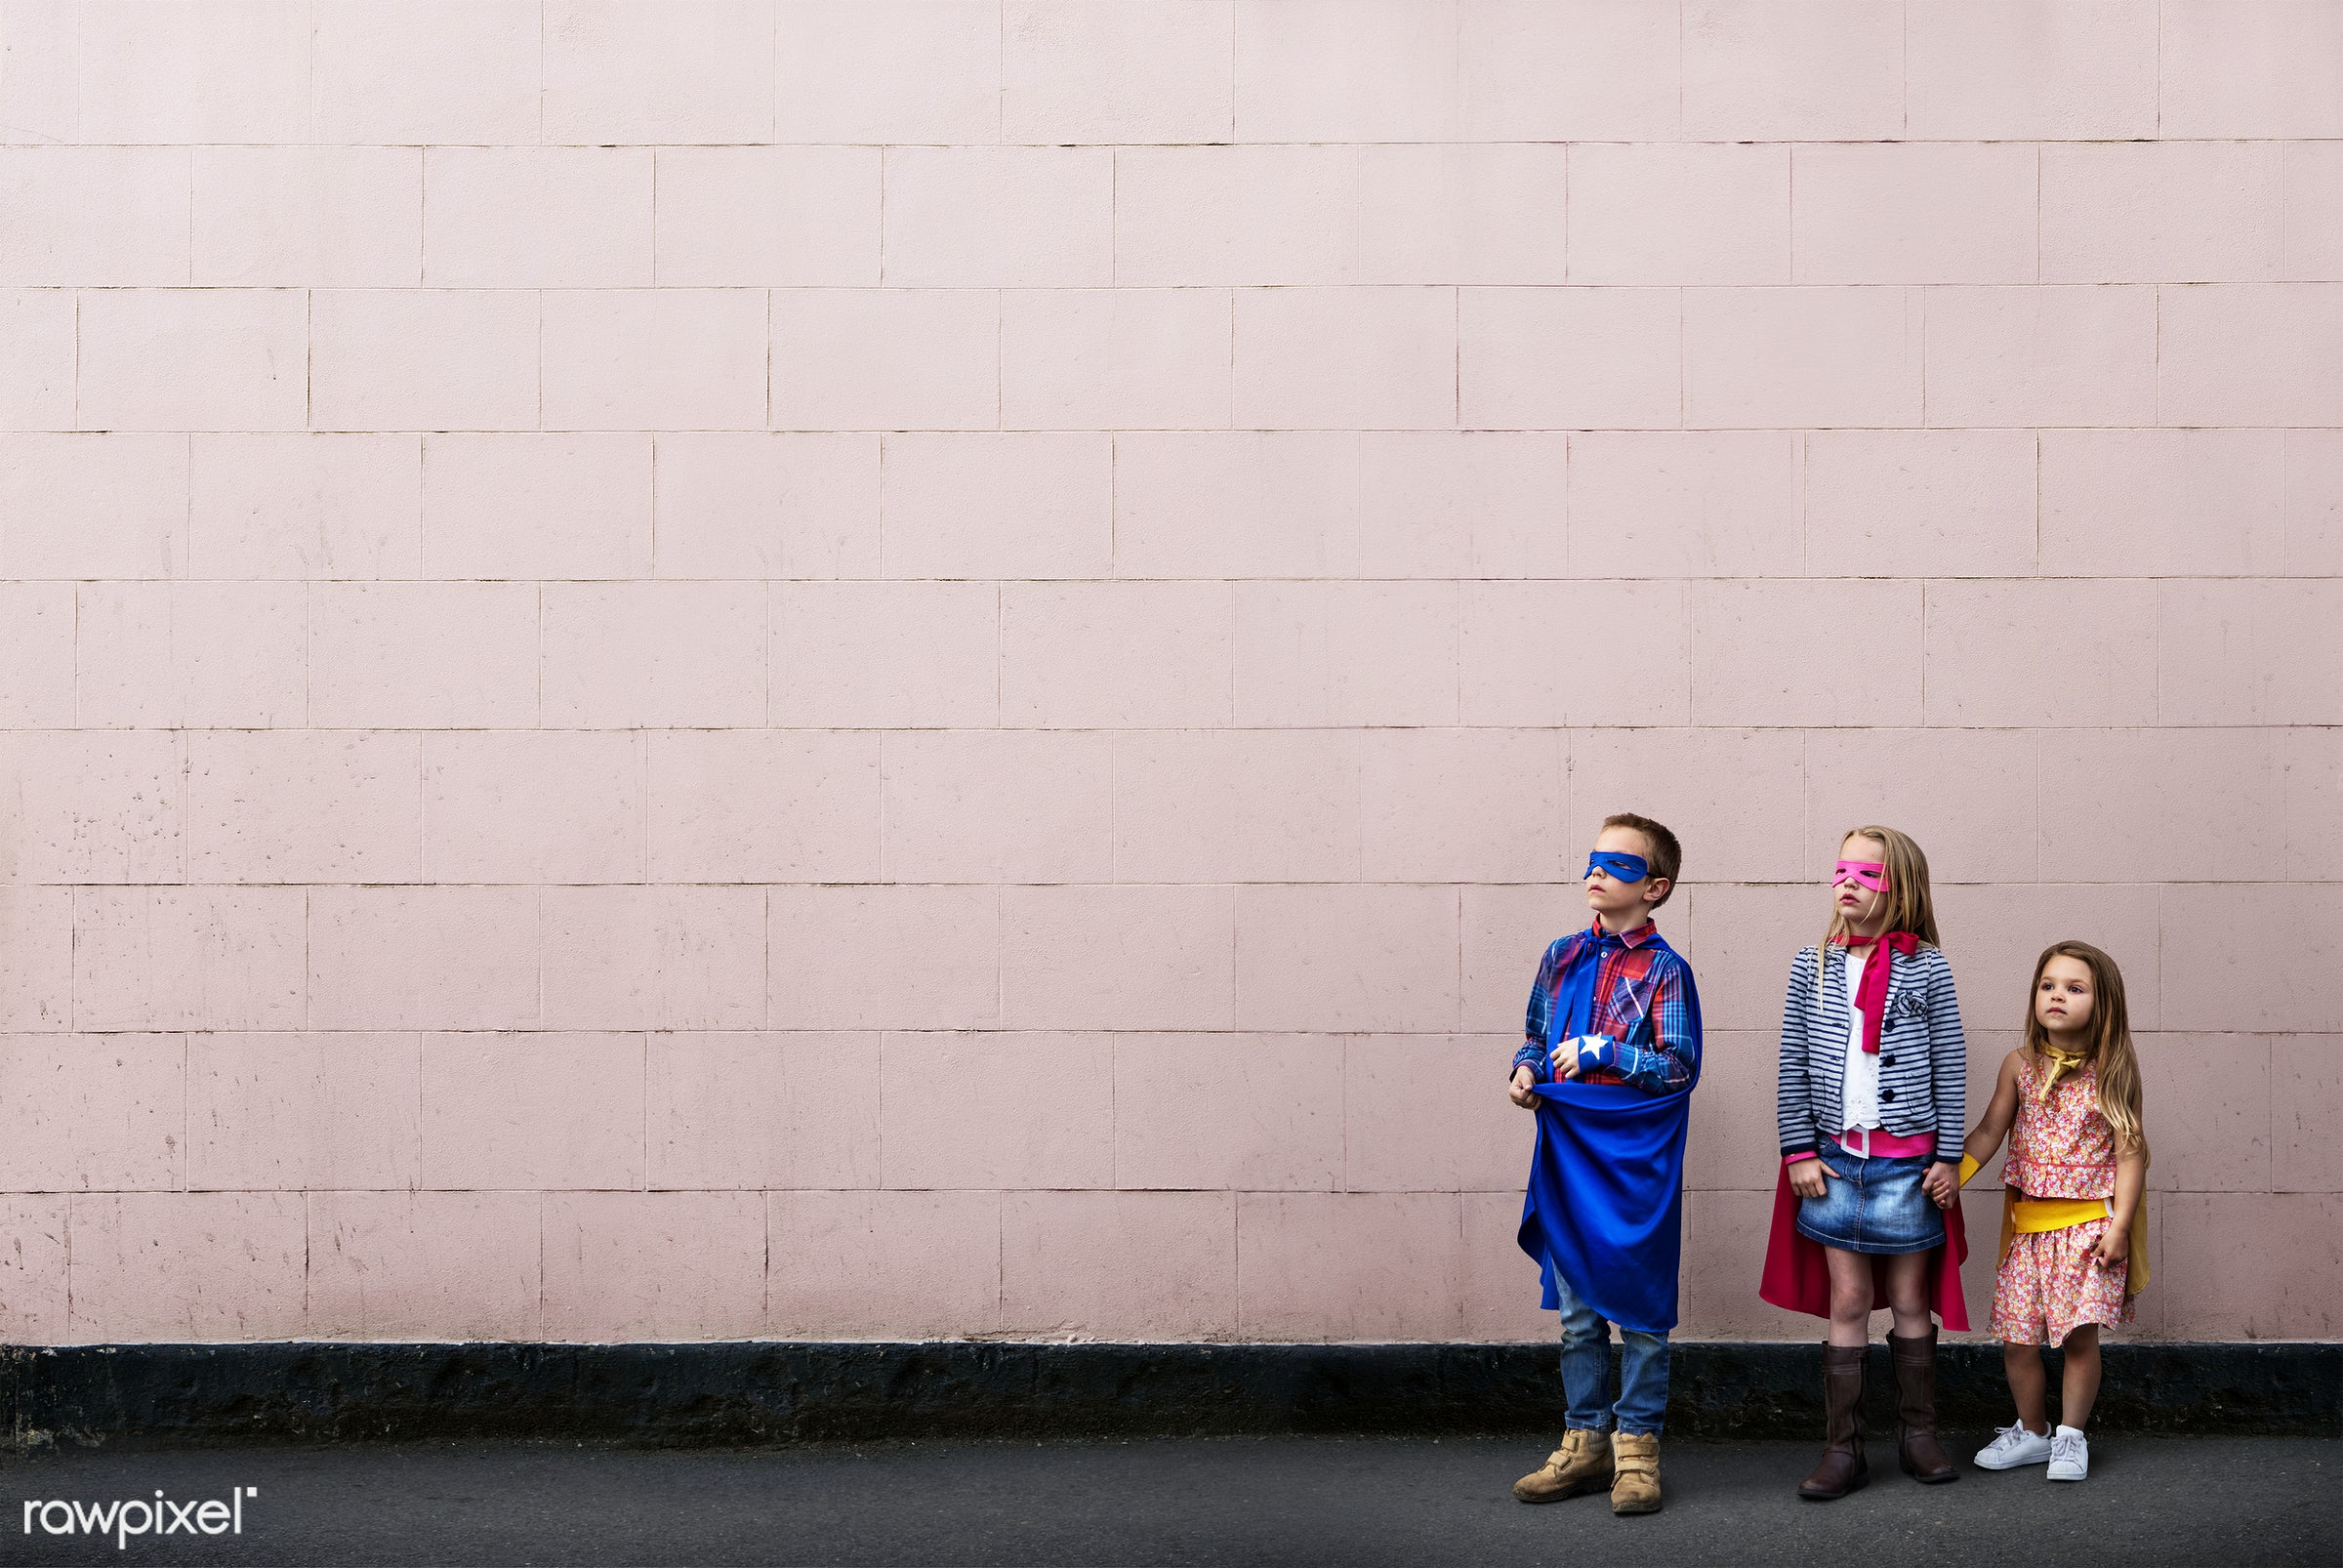 superhero, activity, aspirations, brick wall, brother, building, cheerful, child, childhood, color, colorful, confidence,...